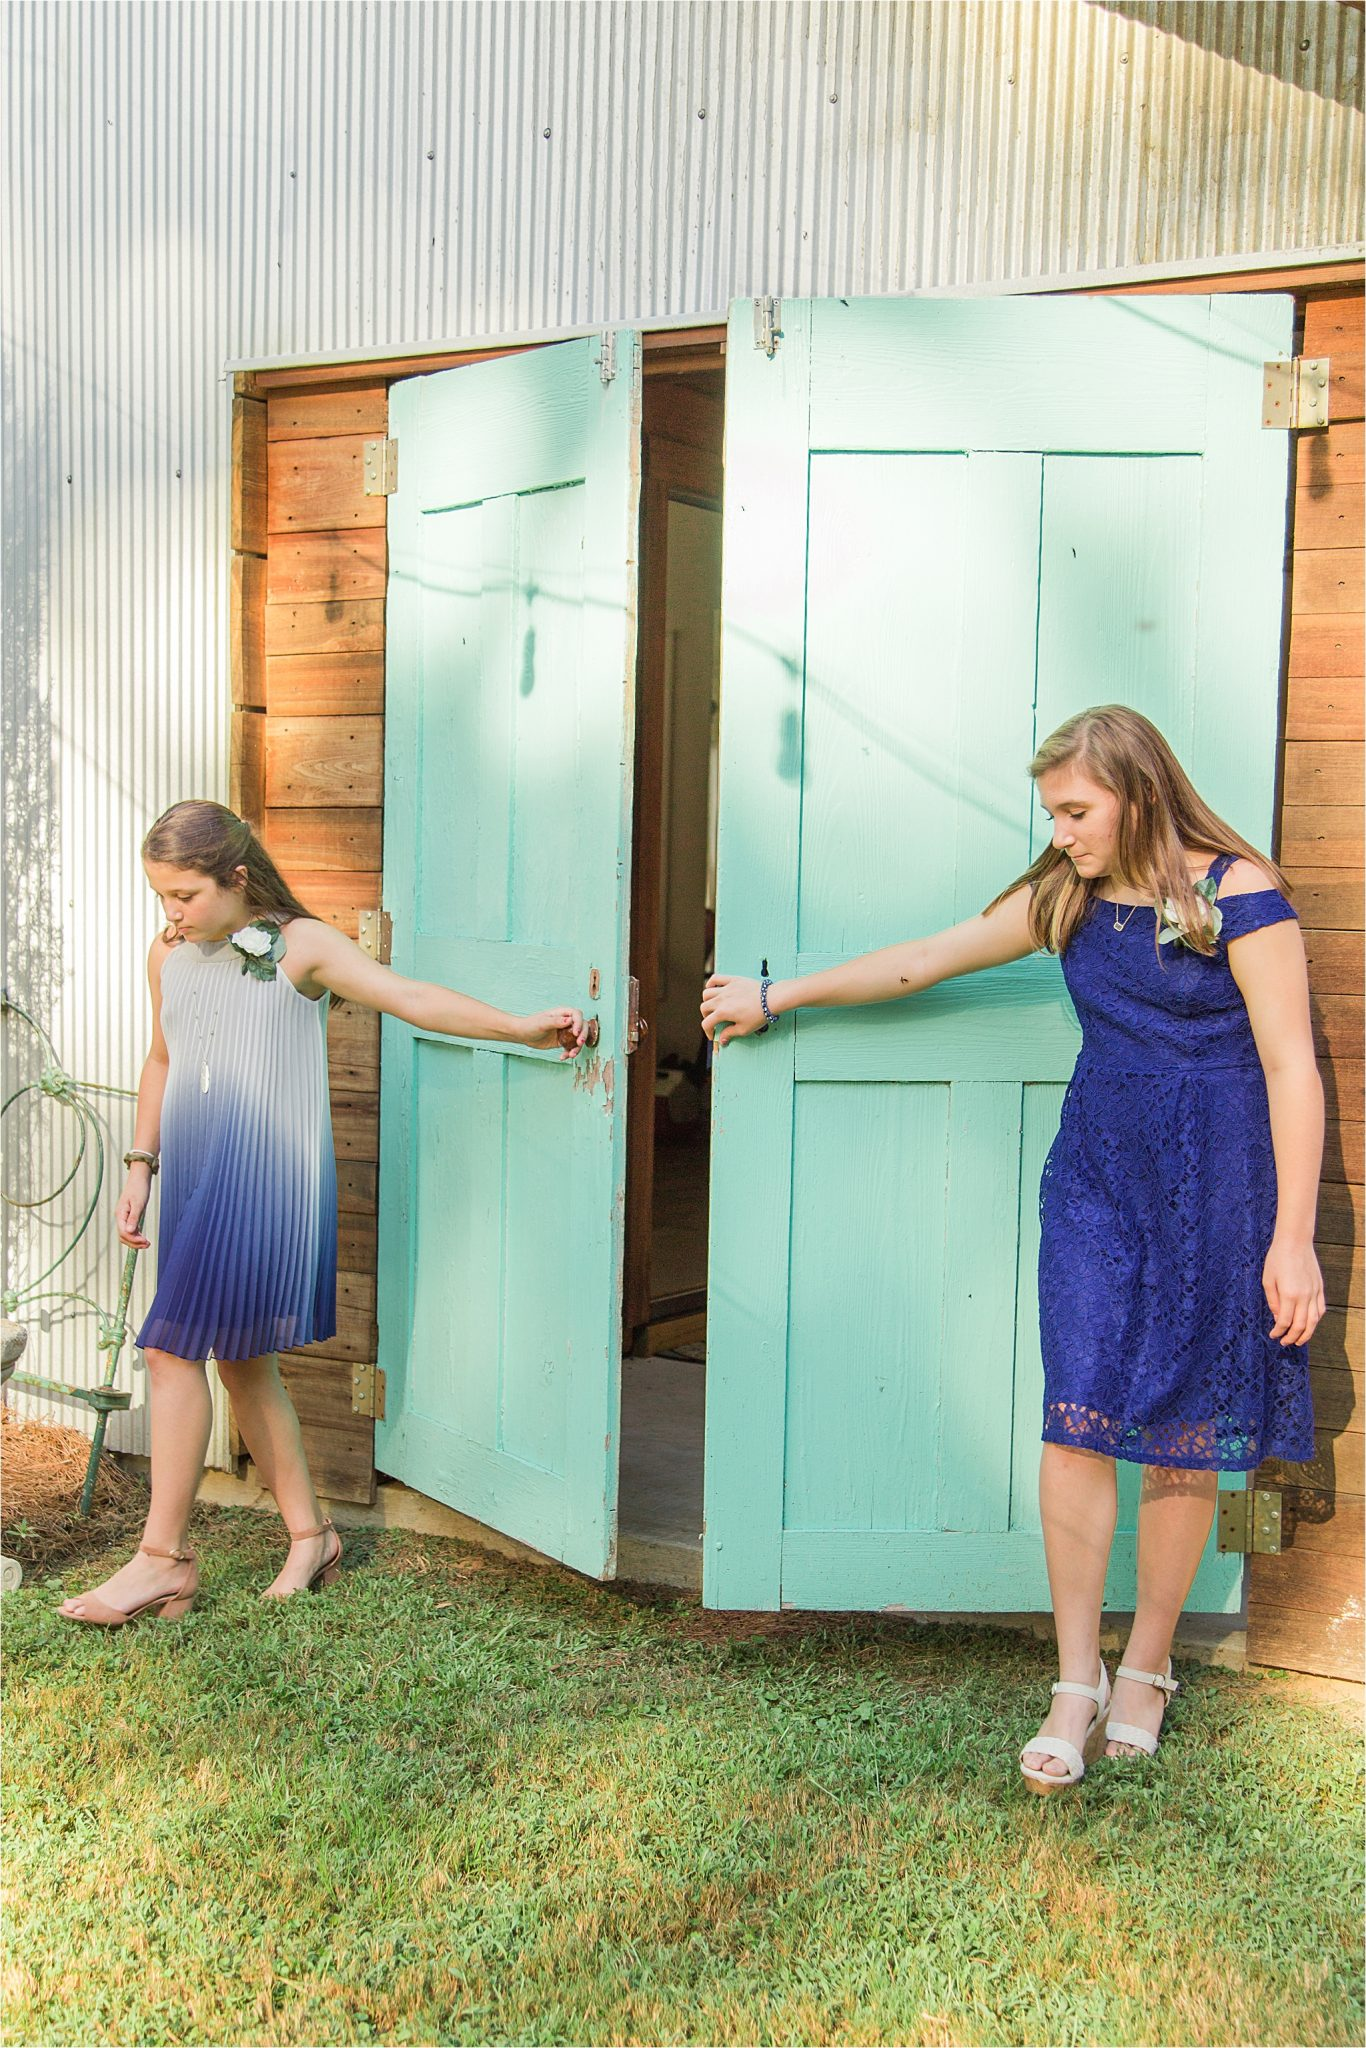 bridal-entrance-special-wedding-ceremony-blue-wedding-barn-doors